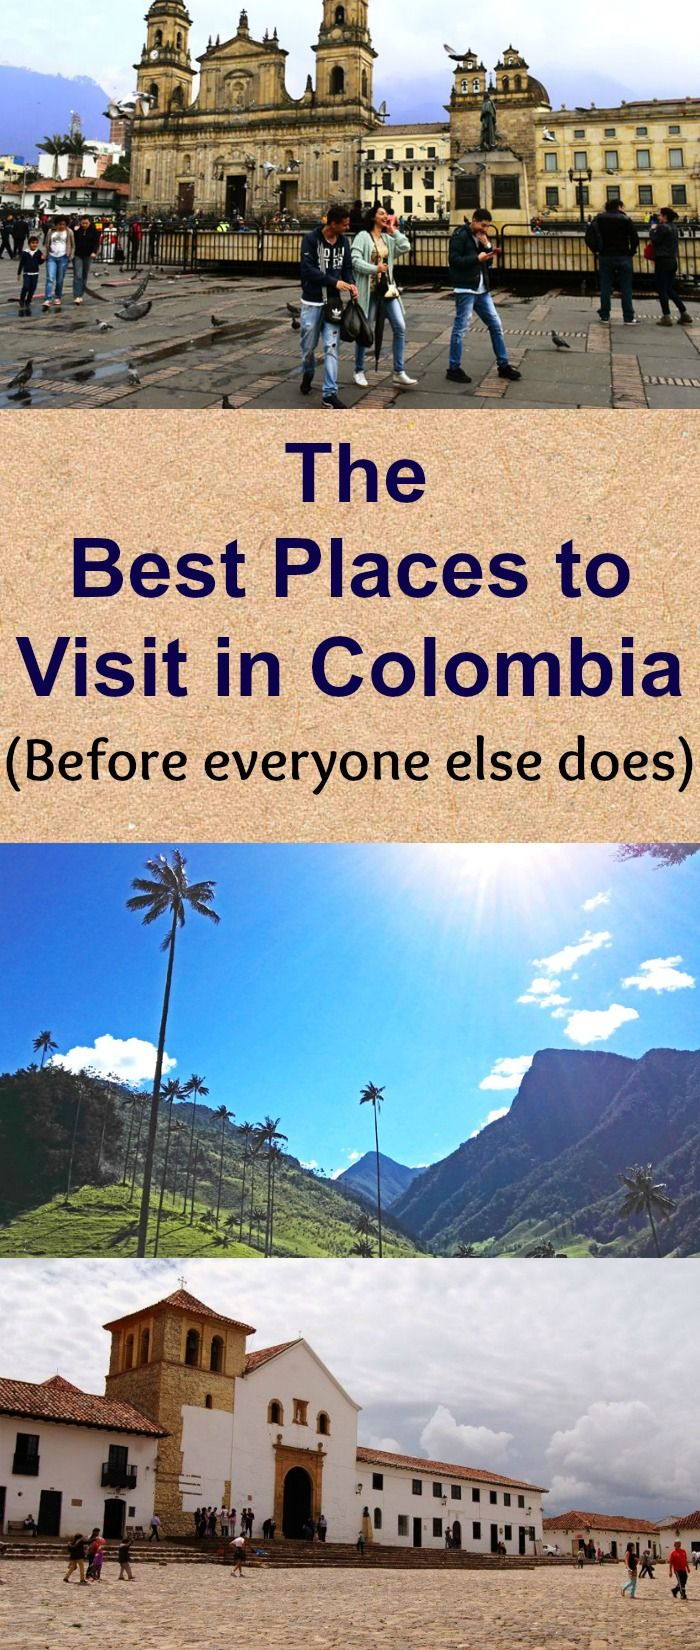 Visit these highlights of Colombia before it gets too touristy!